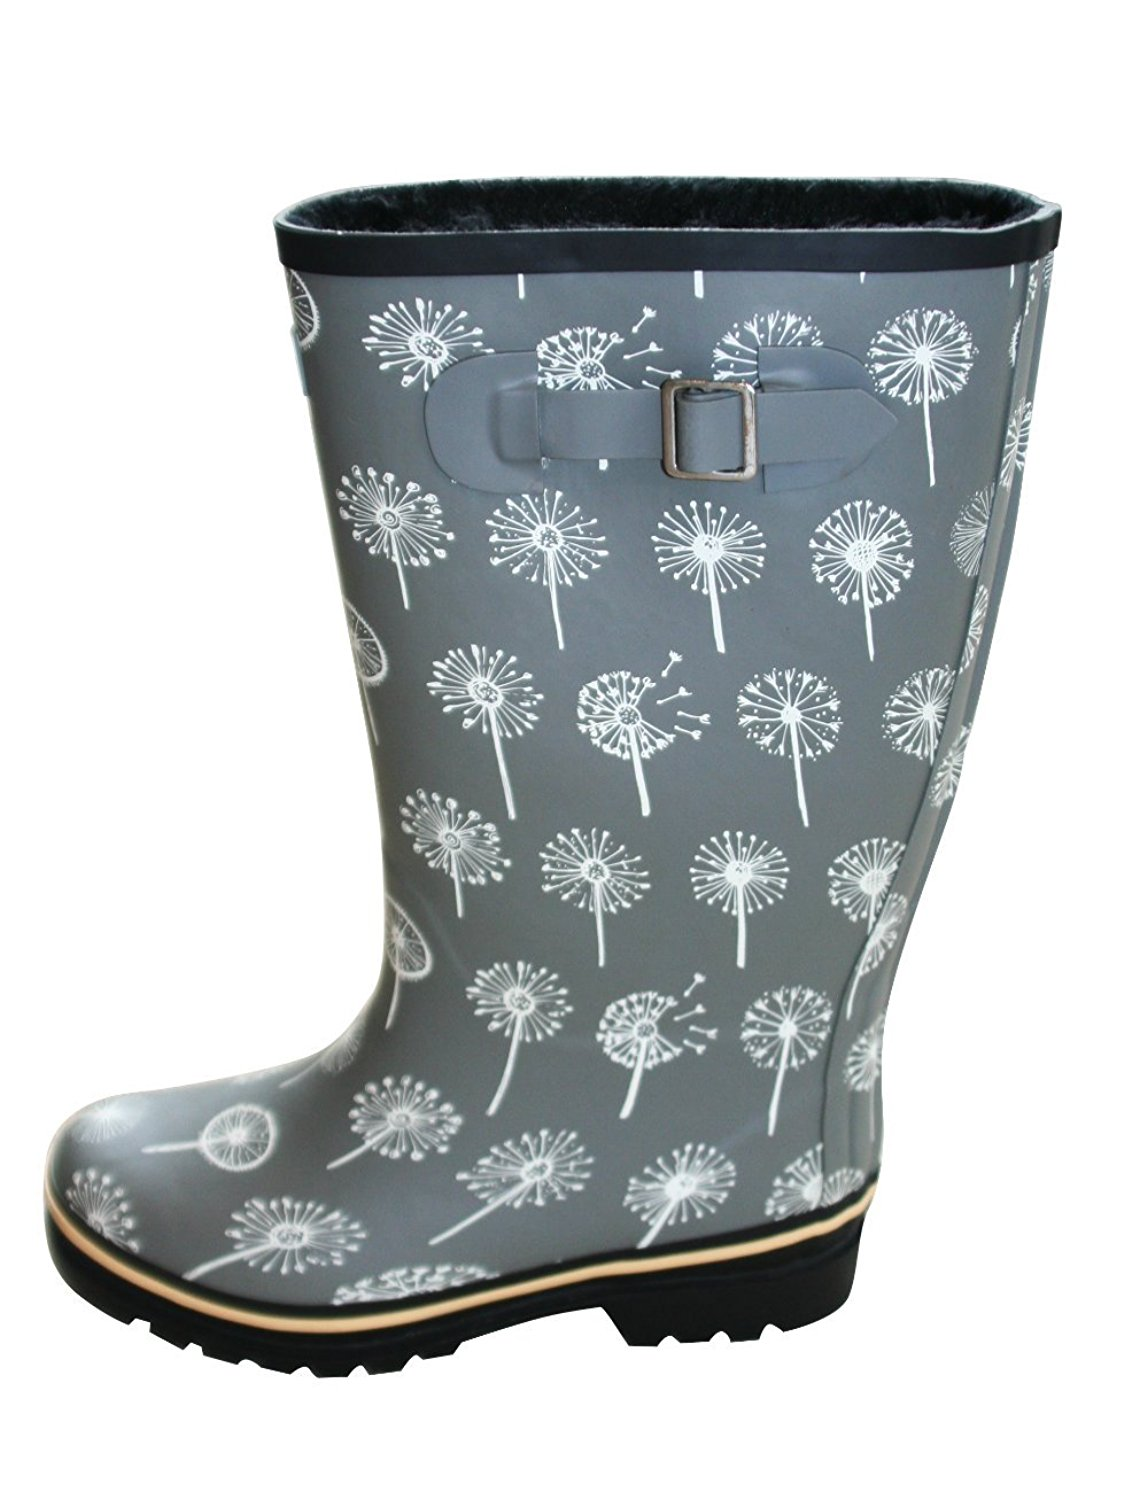 ab3462a7182f Get Quotations · Jileon Wide Calf All Weather Durable Rubber Rain Boots for  Women-Fits Calf Sizes up